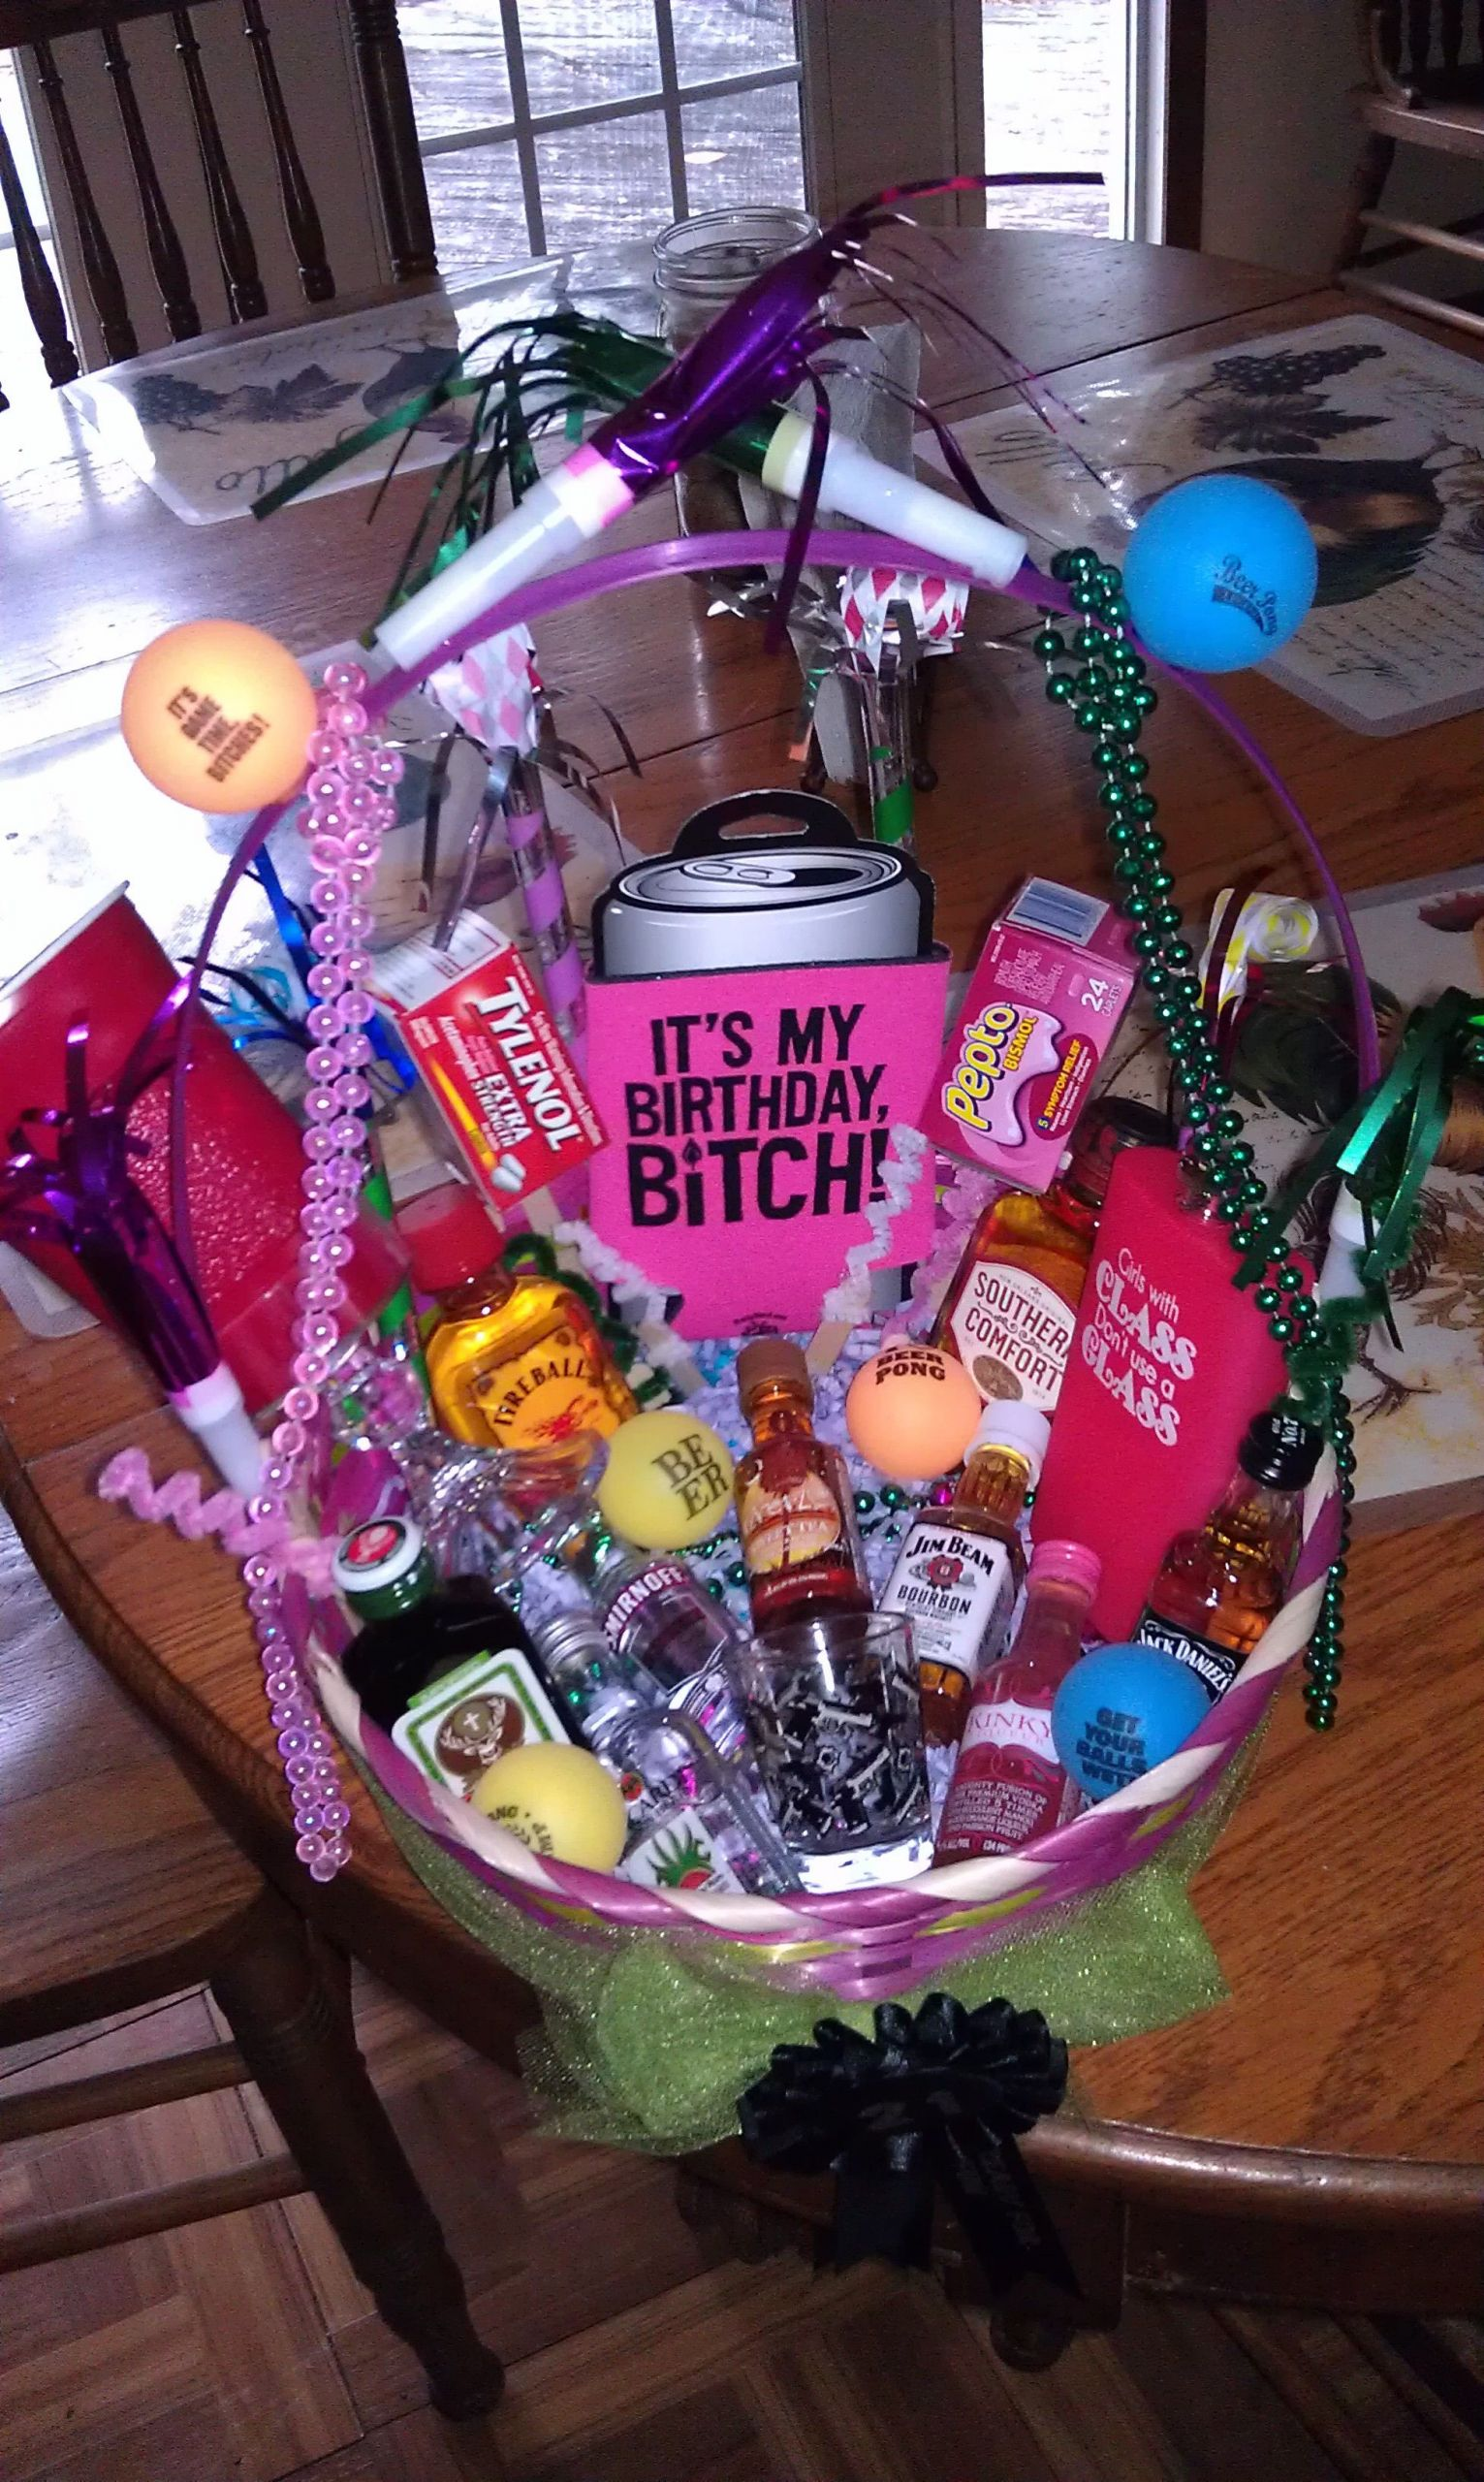 21St Birthday Gift Ideas For Girlfriend  21st birthday basket I want this I love it SOMEONE MAKE